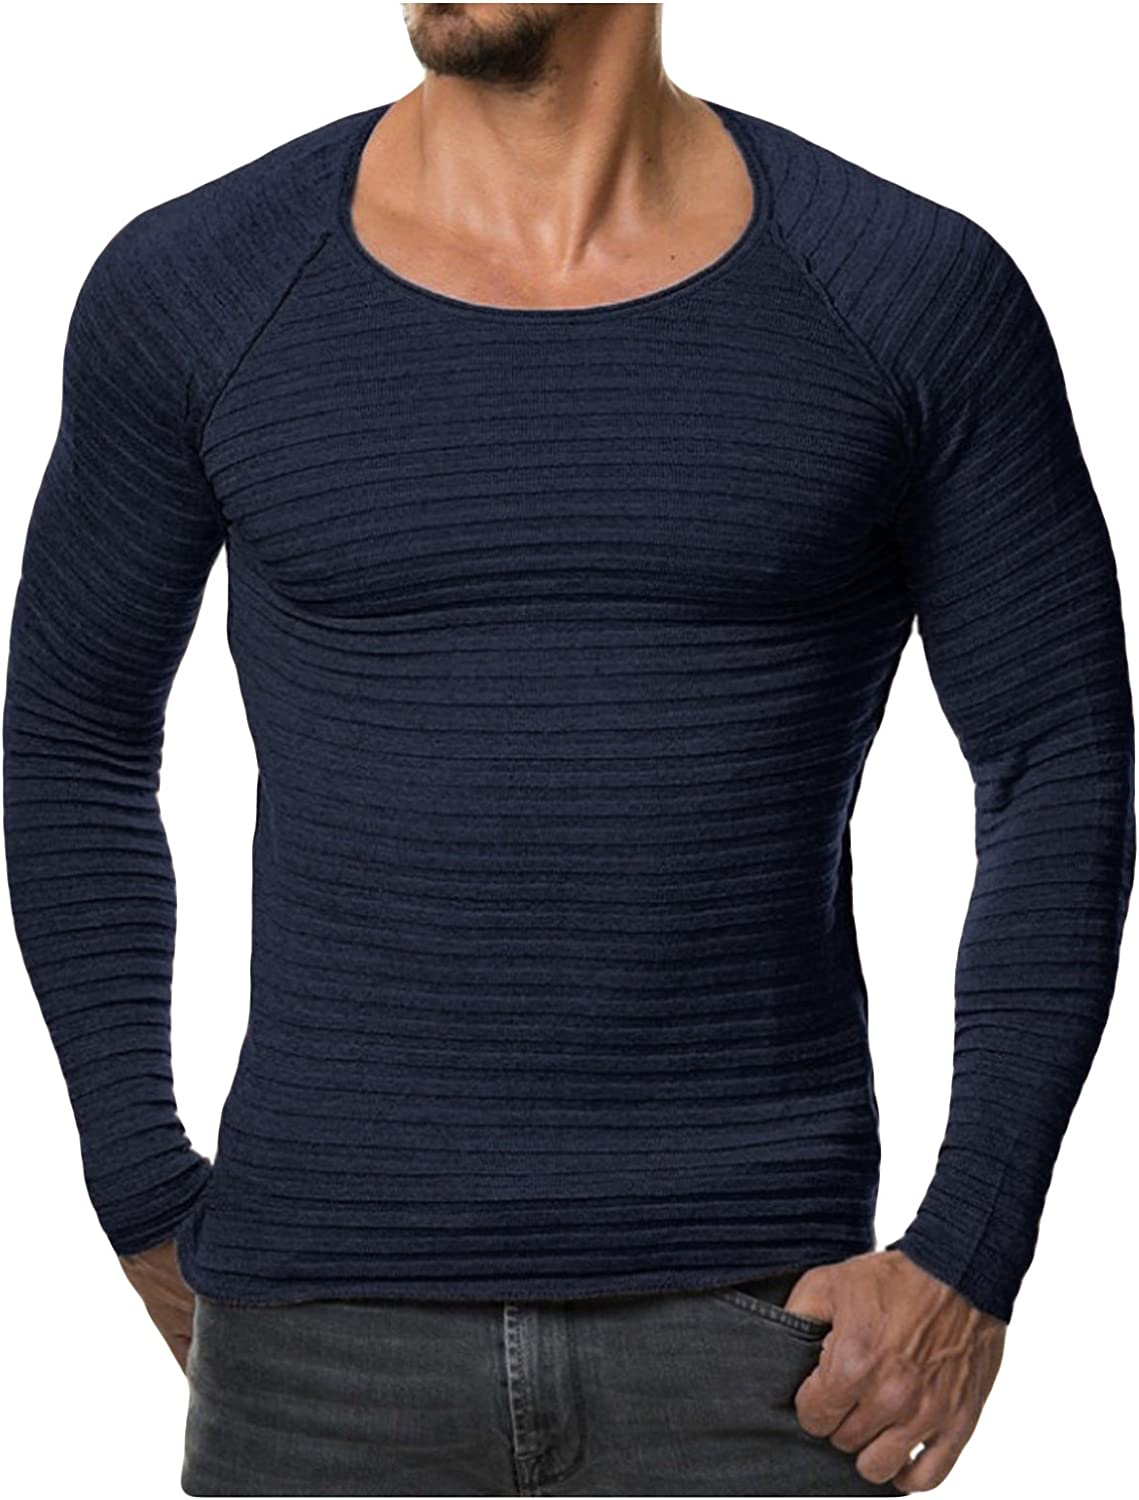 newrong Mens Slim Fit Round Neck Sweater Long Sleeve Pullover